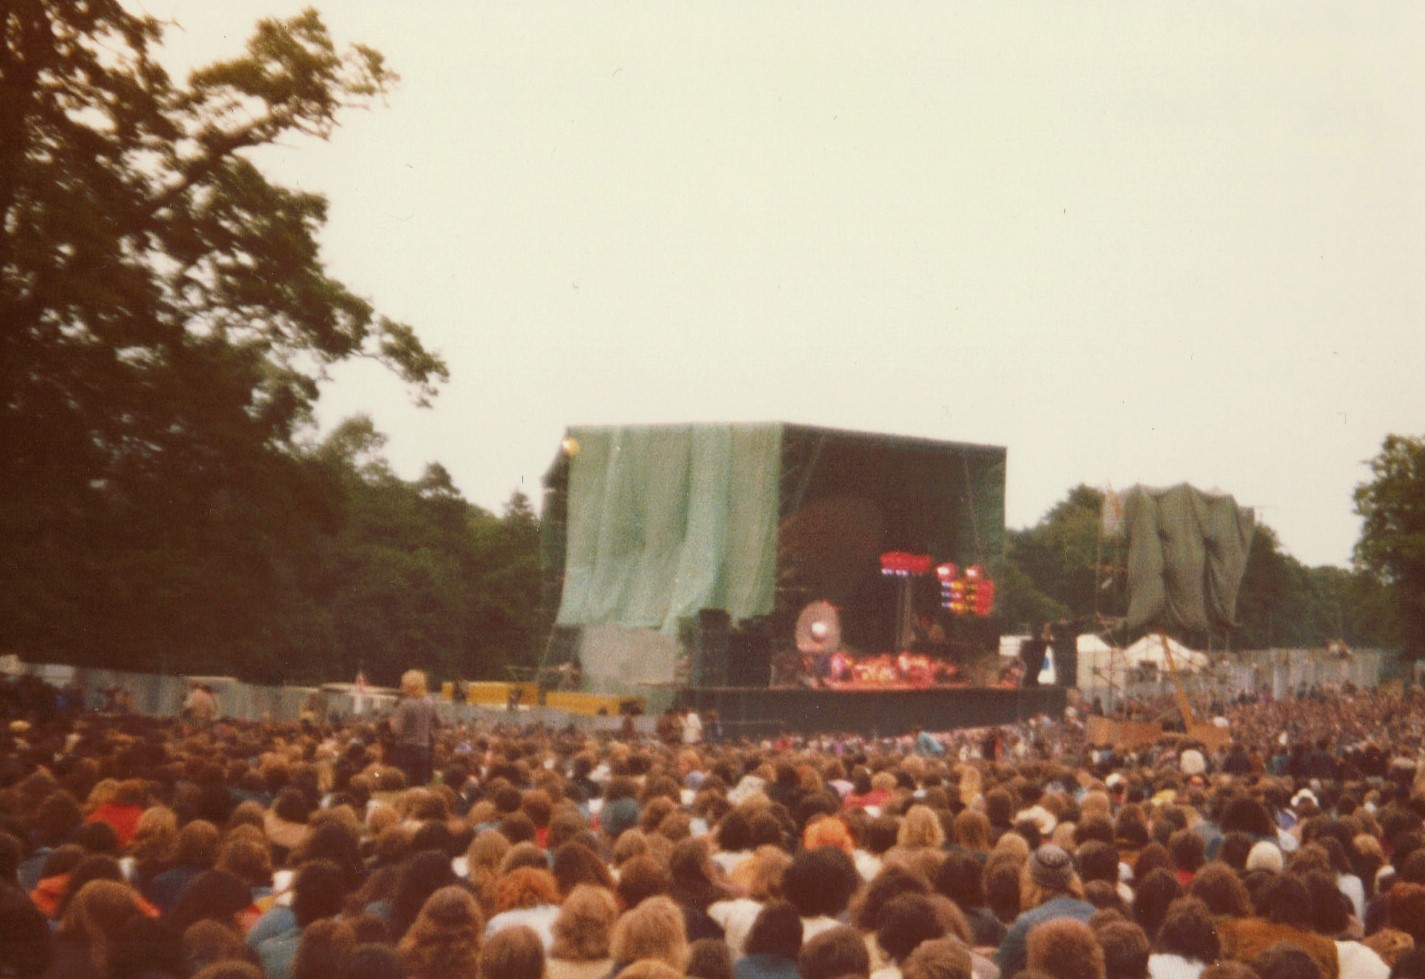 Concerts at knebworth house wikiwand for House music 2003